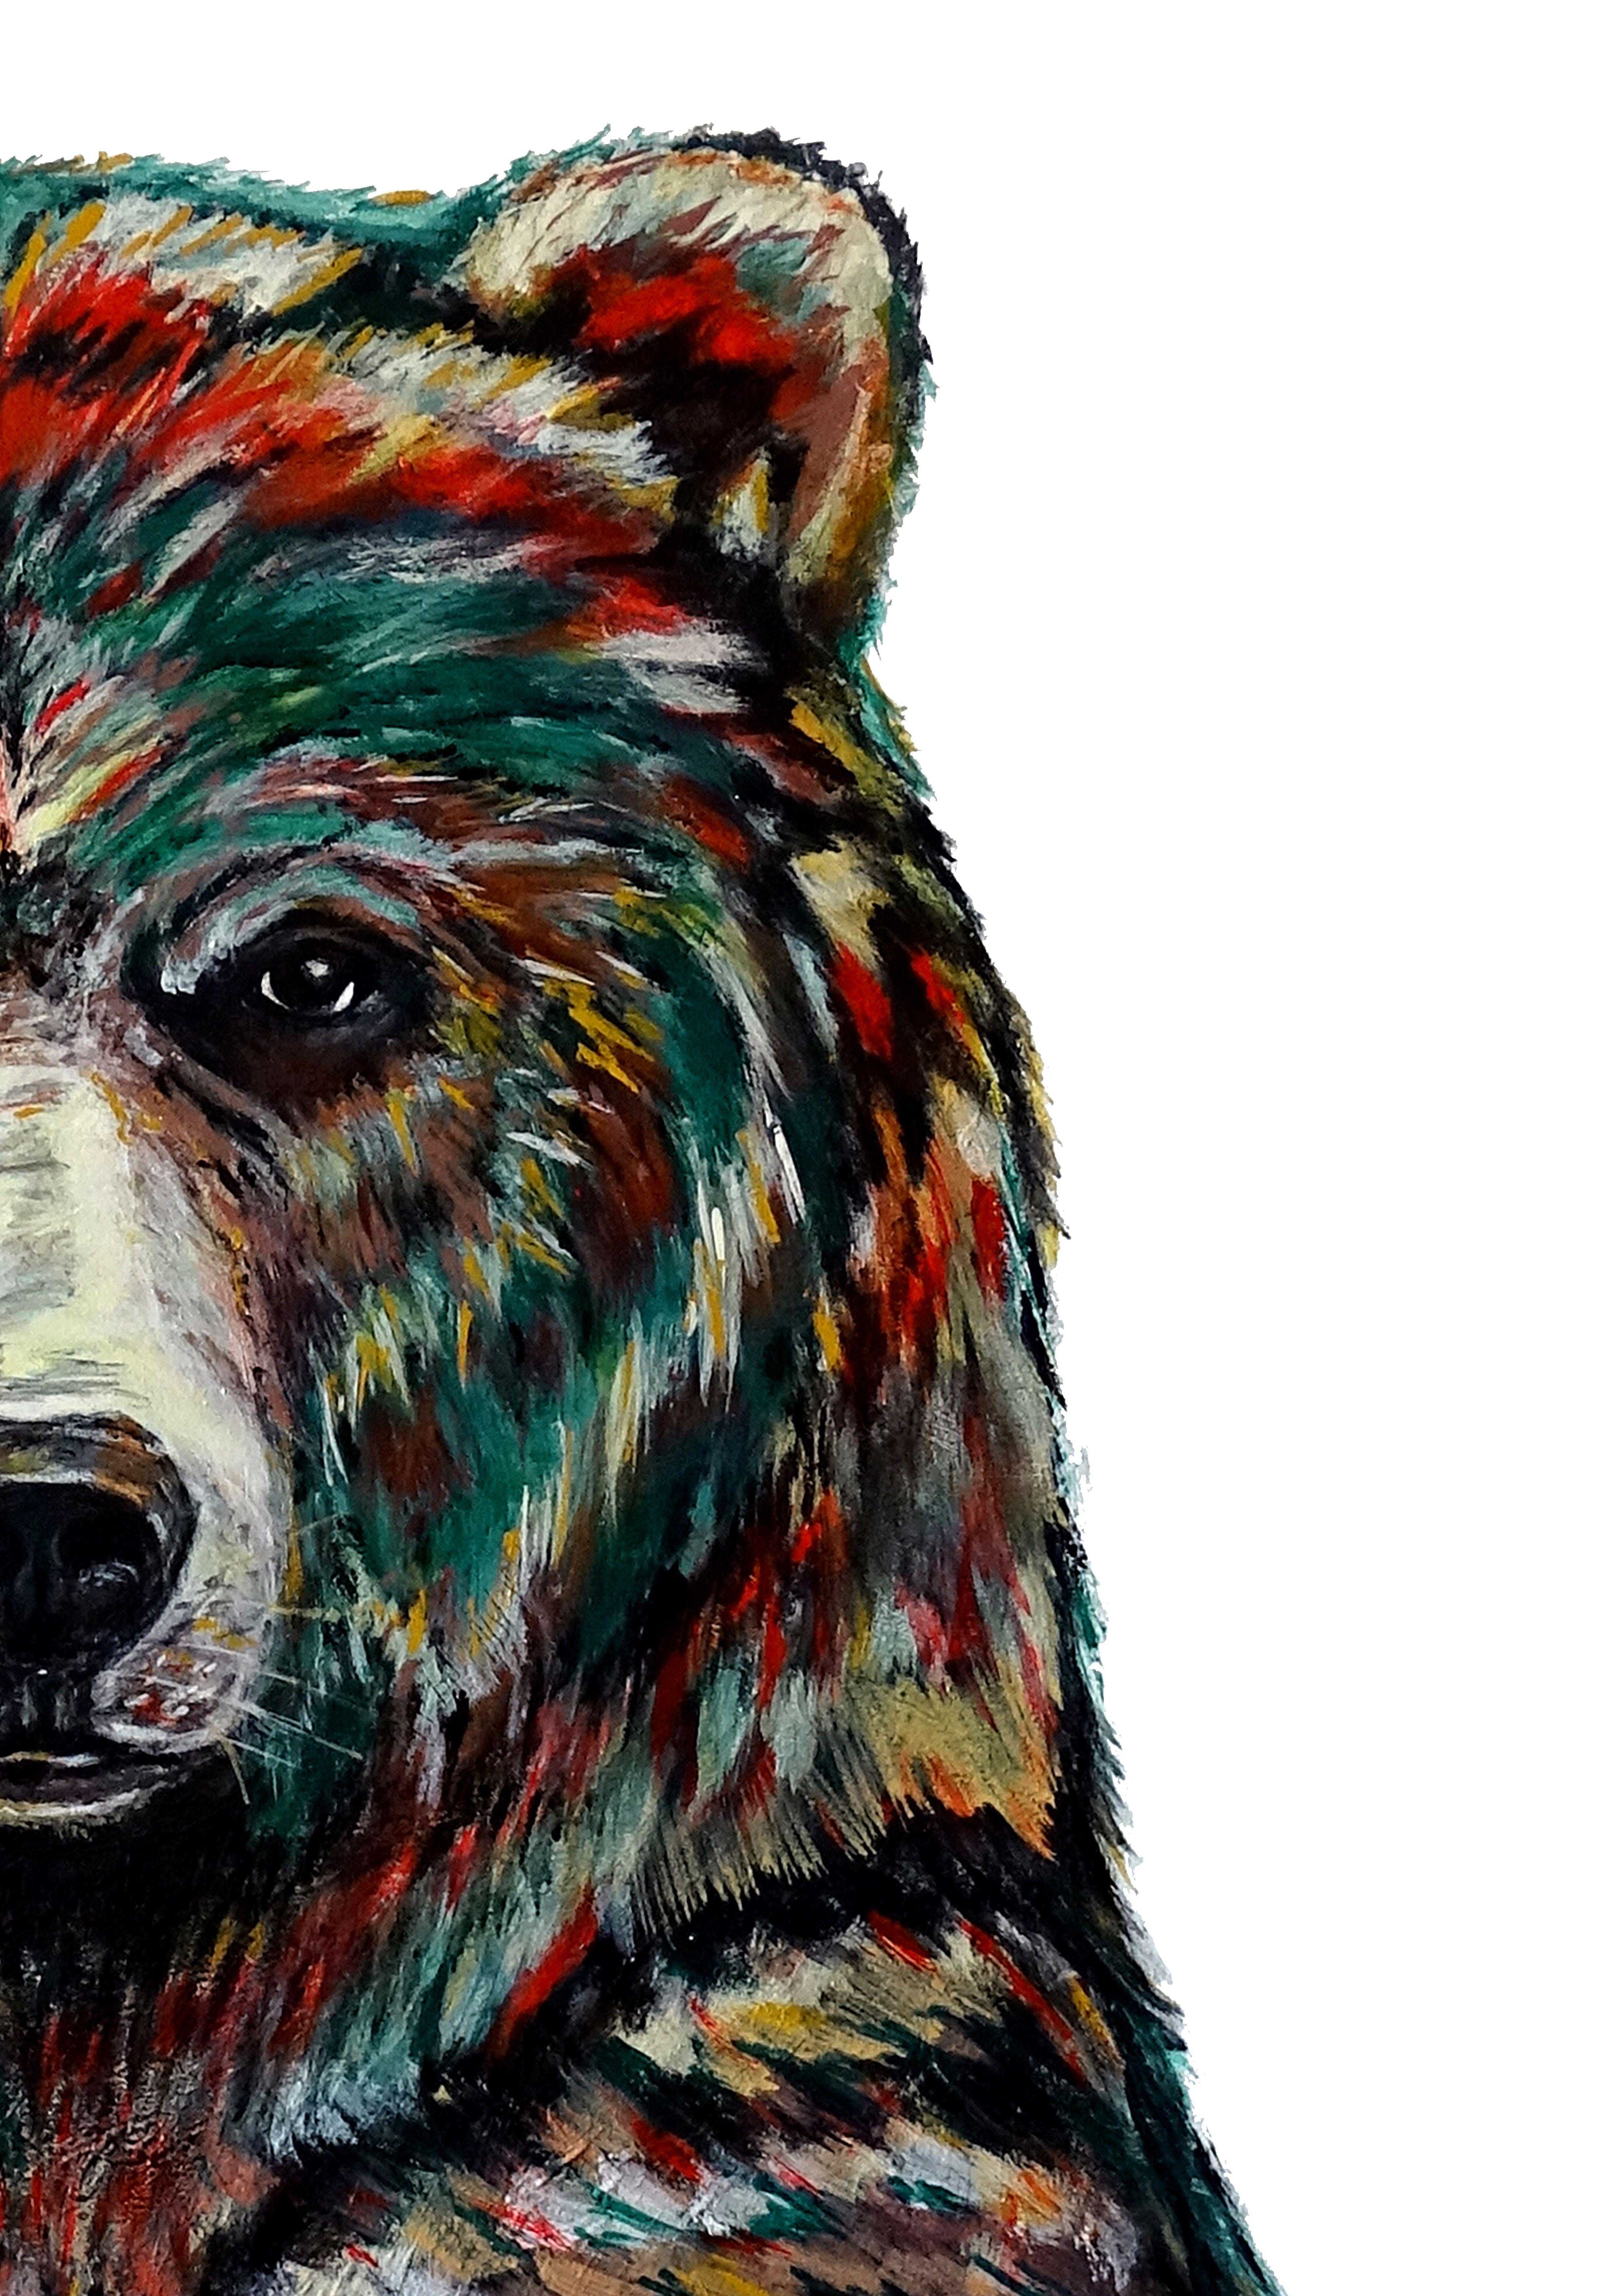 Ours Acrylique Bluebeary Animal Peinture Animaux Acrylique Art Animalier Artiste Art Animal Totems Culture Art